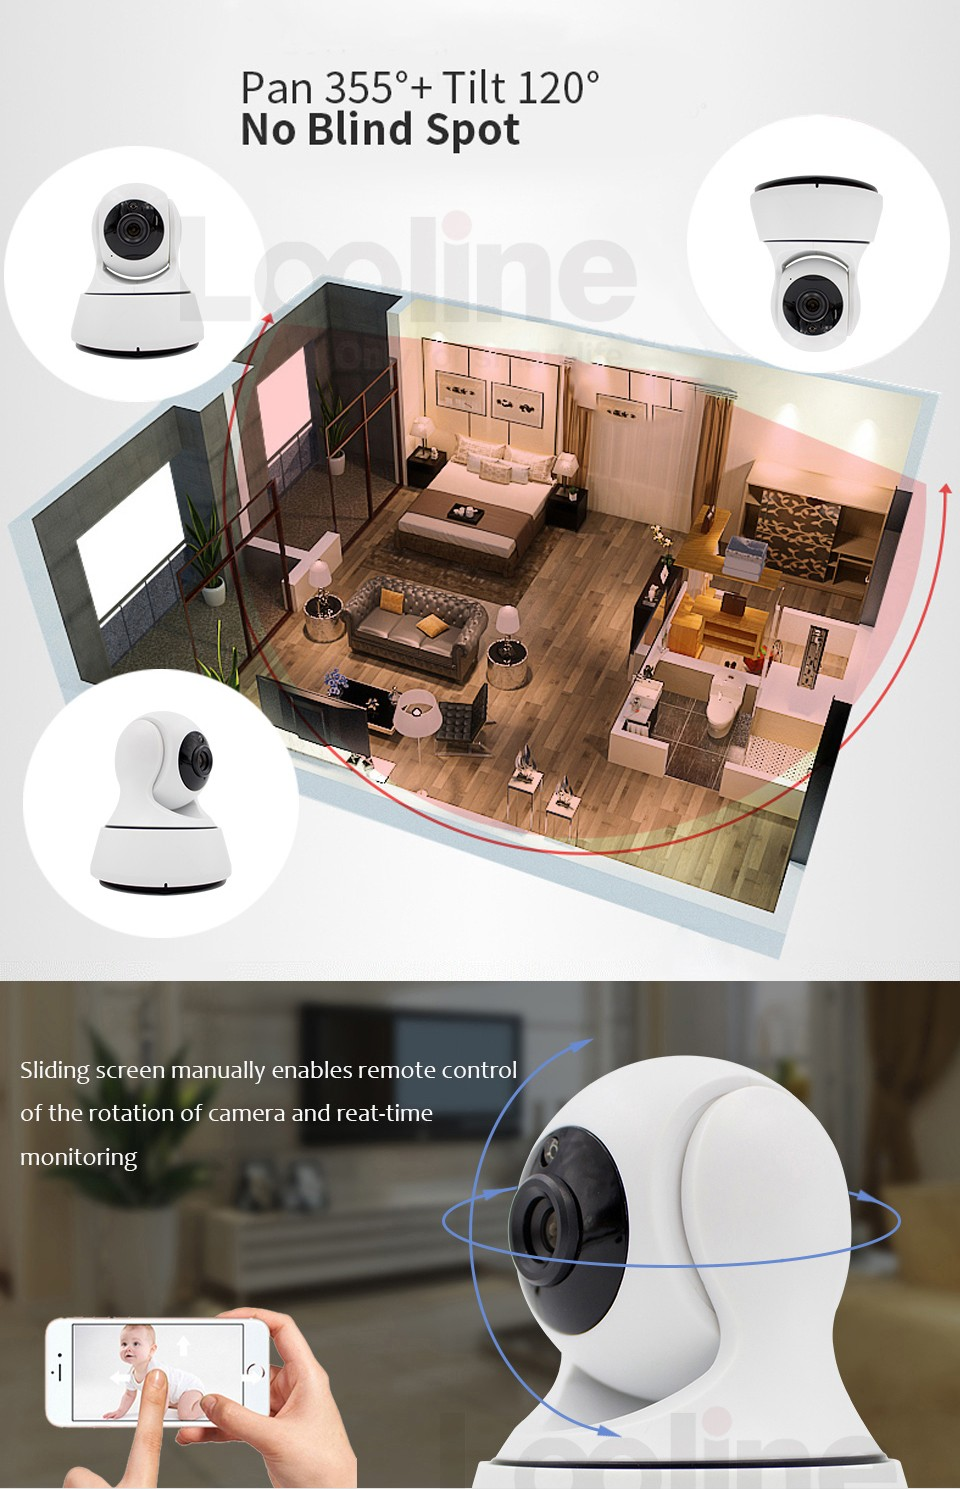 HD 1.0 MP 720P 2.0 MP 1080P Dome security Surveillance CCTV IP Camera IR night vison ONVIF 2.0 network indoor Cam P2P phone view